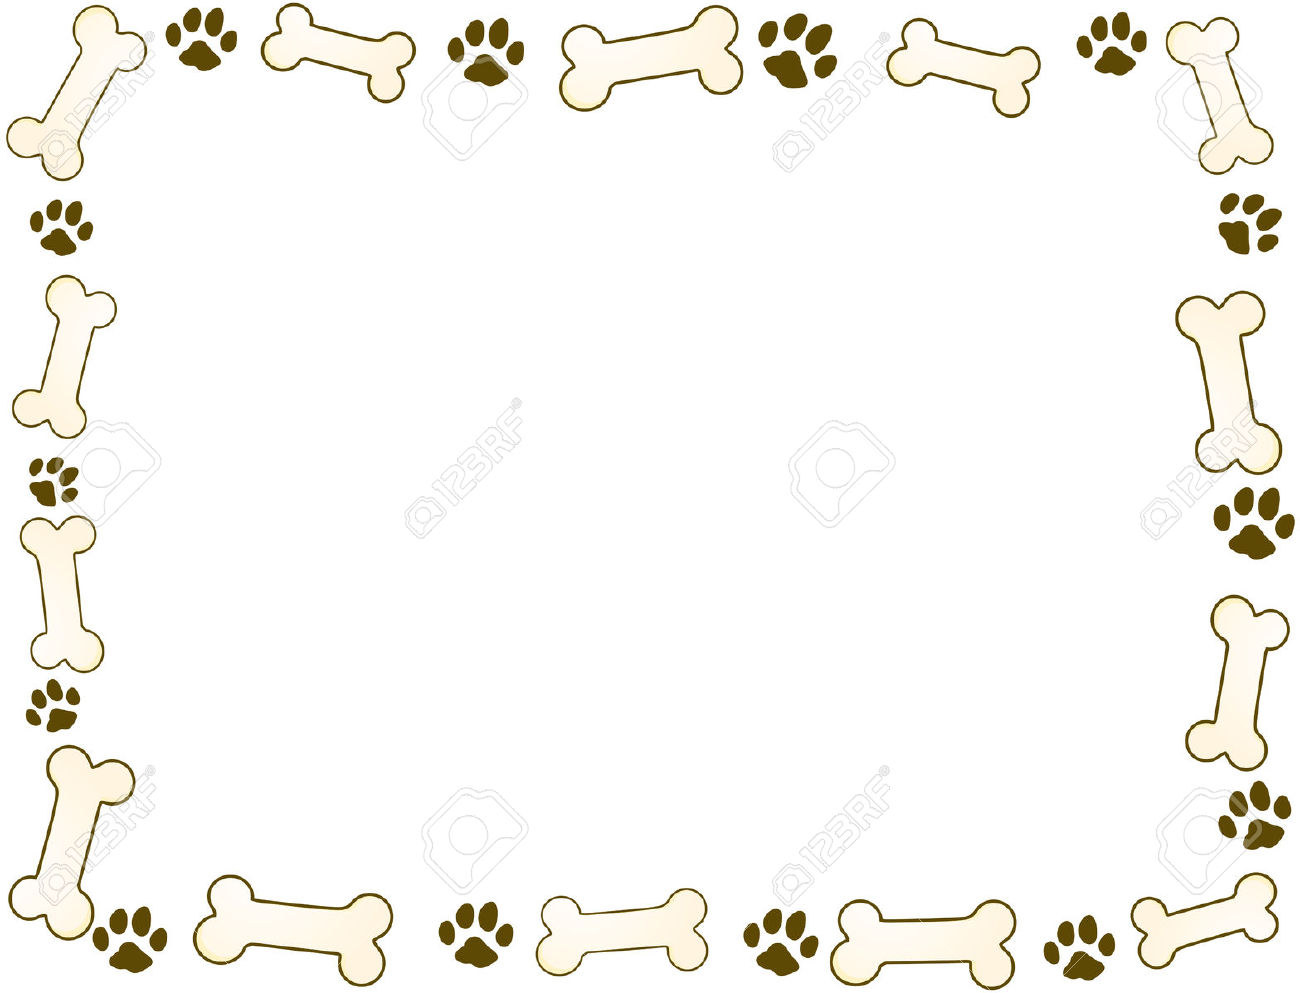 Pets clipart boarder Border With collection clipart Pets